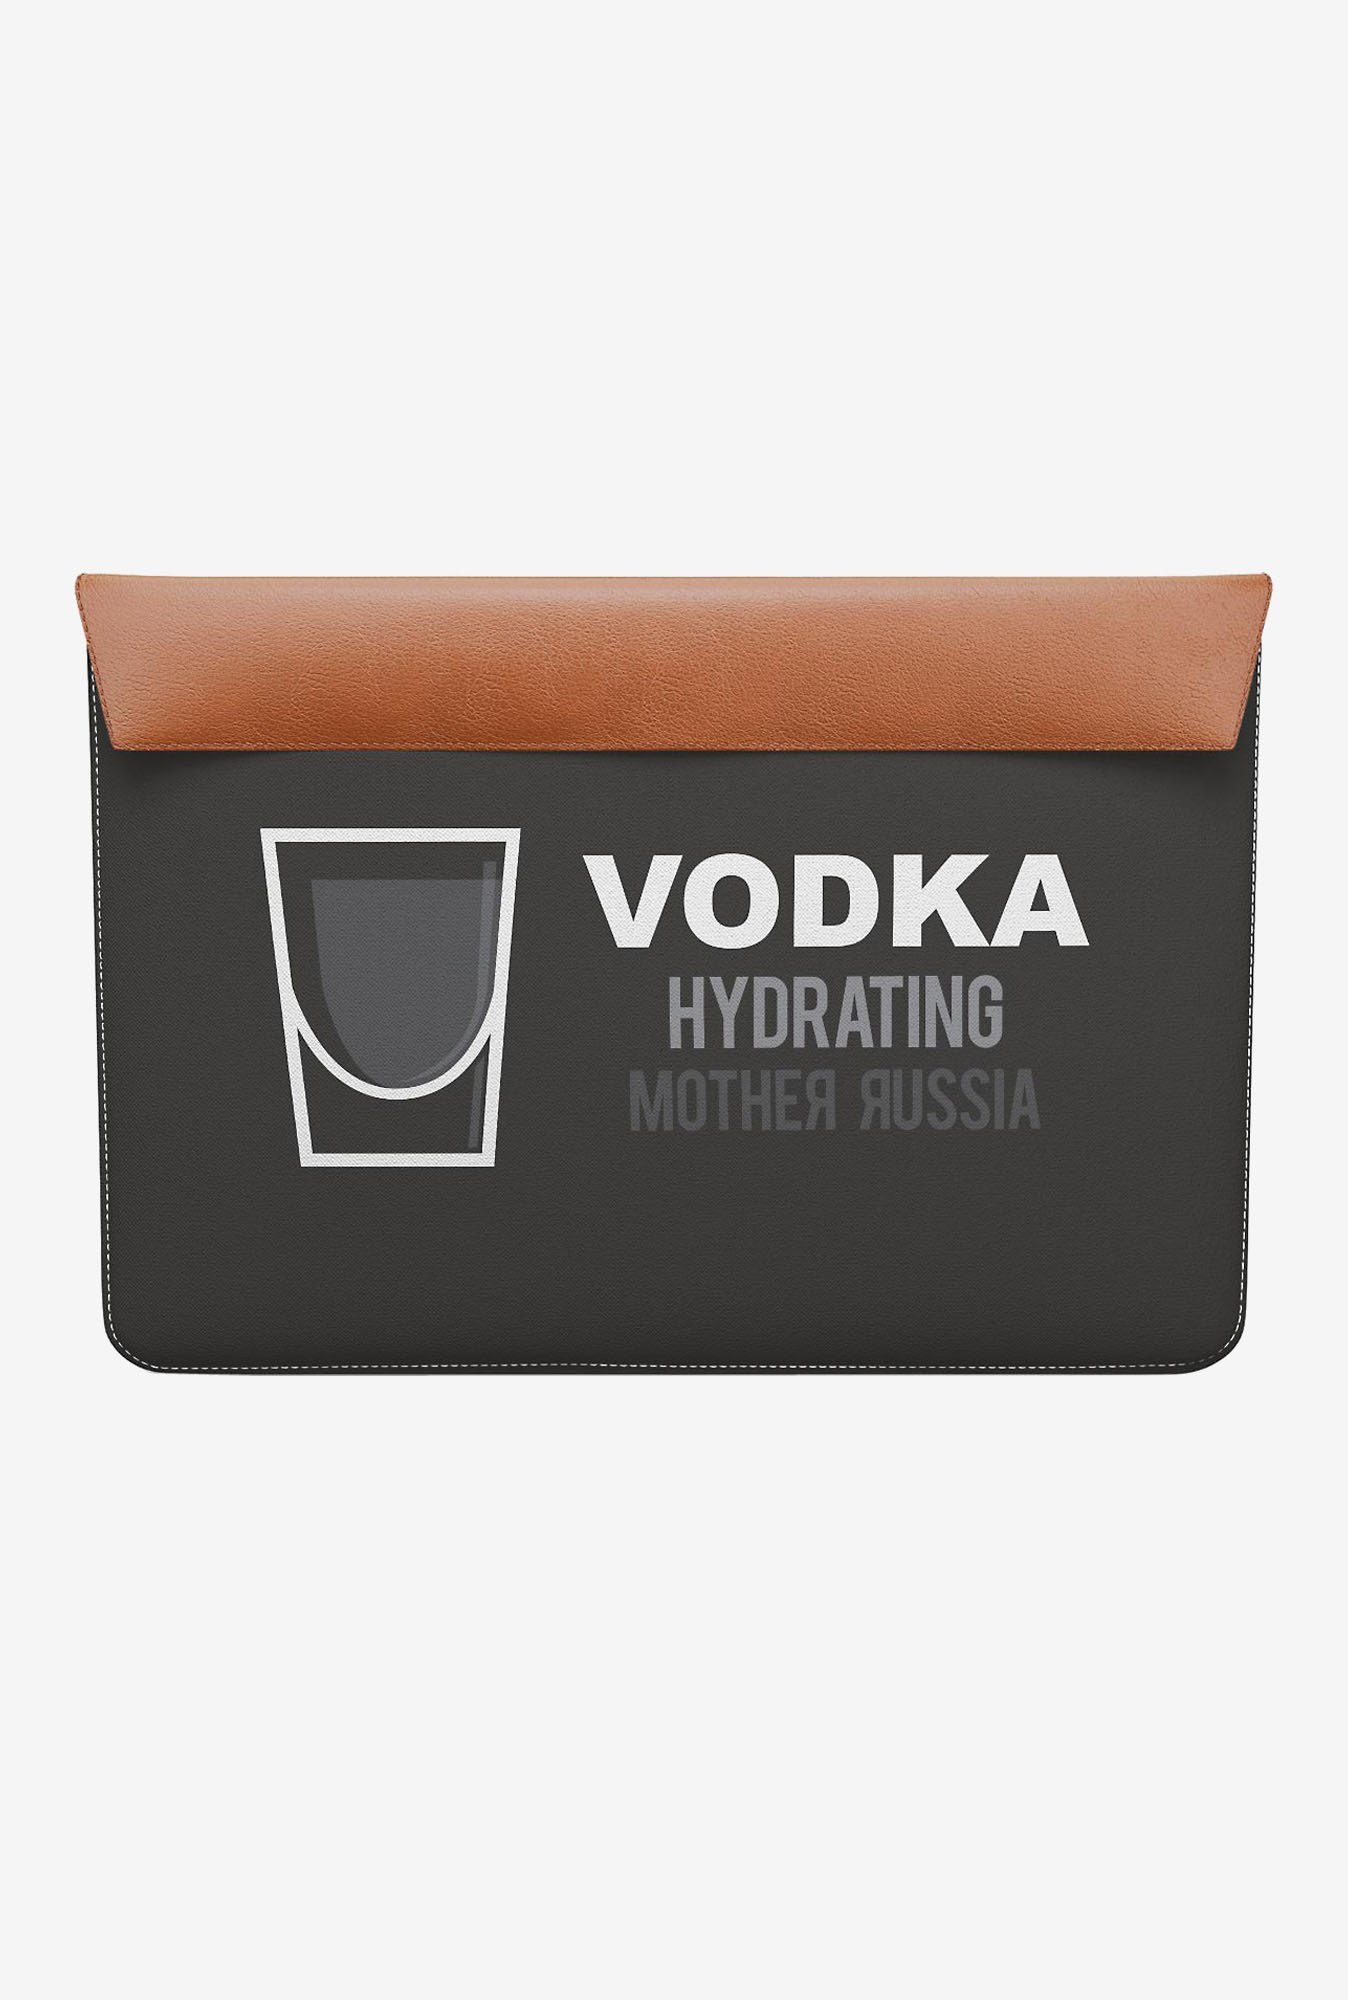 DailyObjects Vodka MacBook Pro 13 Envelope Sleeve